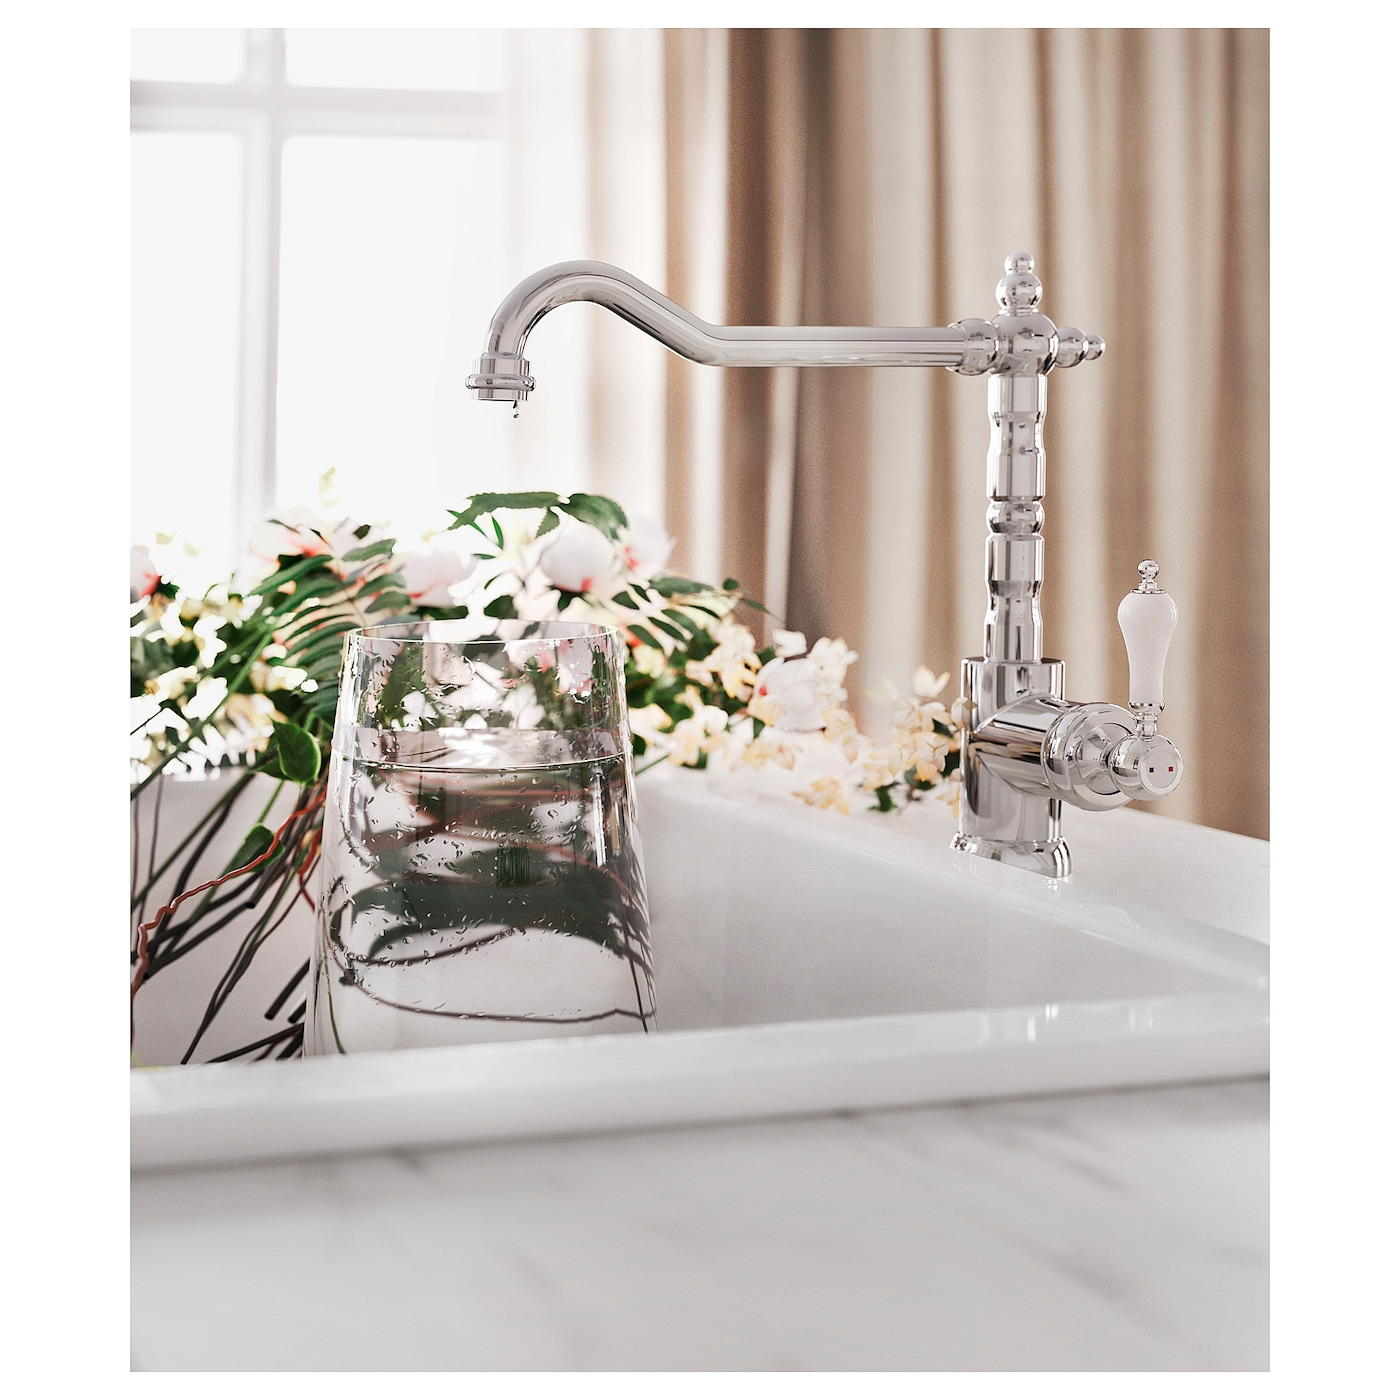 IKEA GLITTRAN kitchen mixer tap 10 year guarantee. Read about the terms in the guarantee brochure.